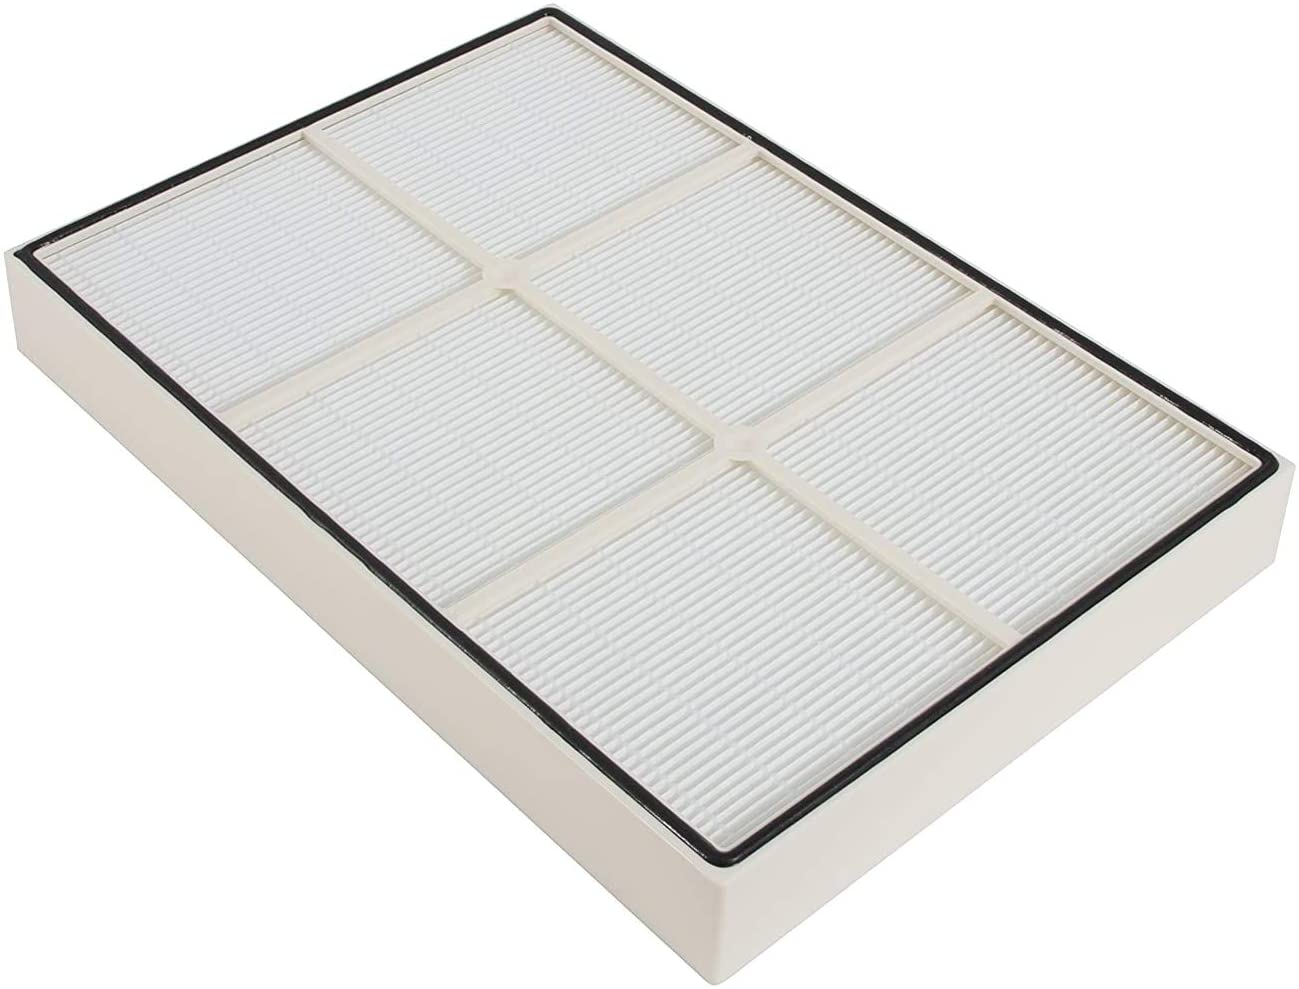 LifeSupplyUSA 50 Pack Replacement HEPA Filter Compatible with Whirlpool Whispure 1183054K AP350 AP450 AP510 Air Purifiers (Plastic Frame)